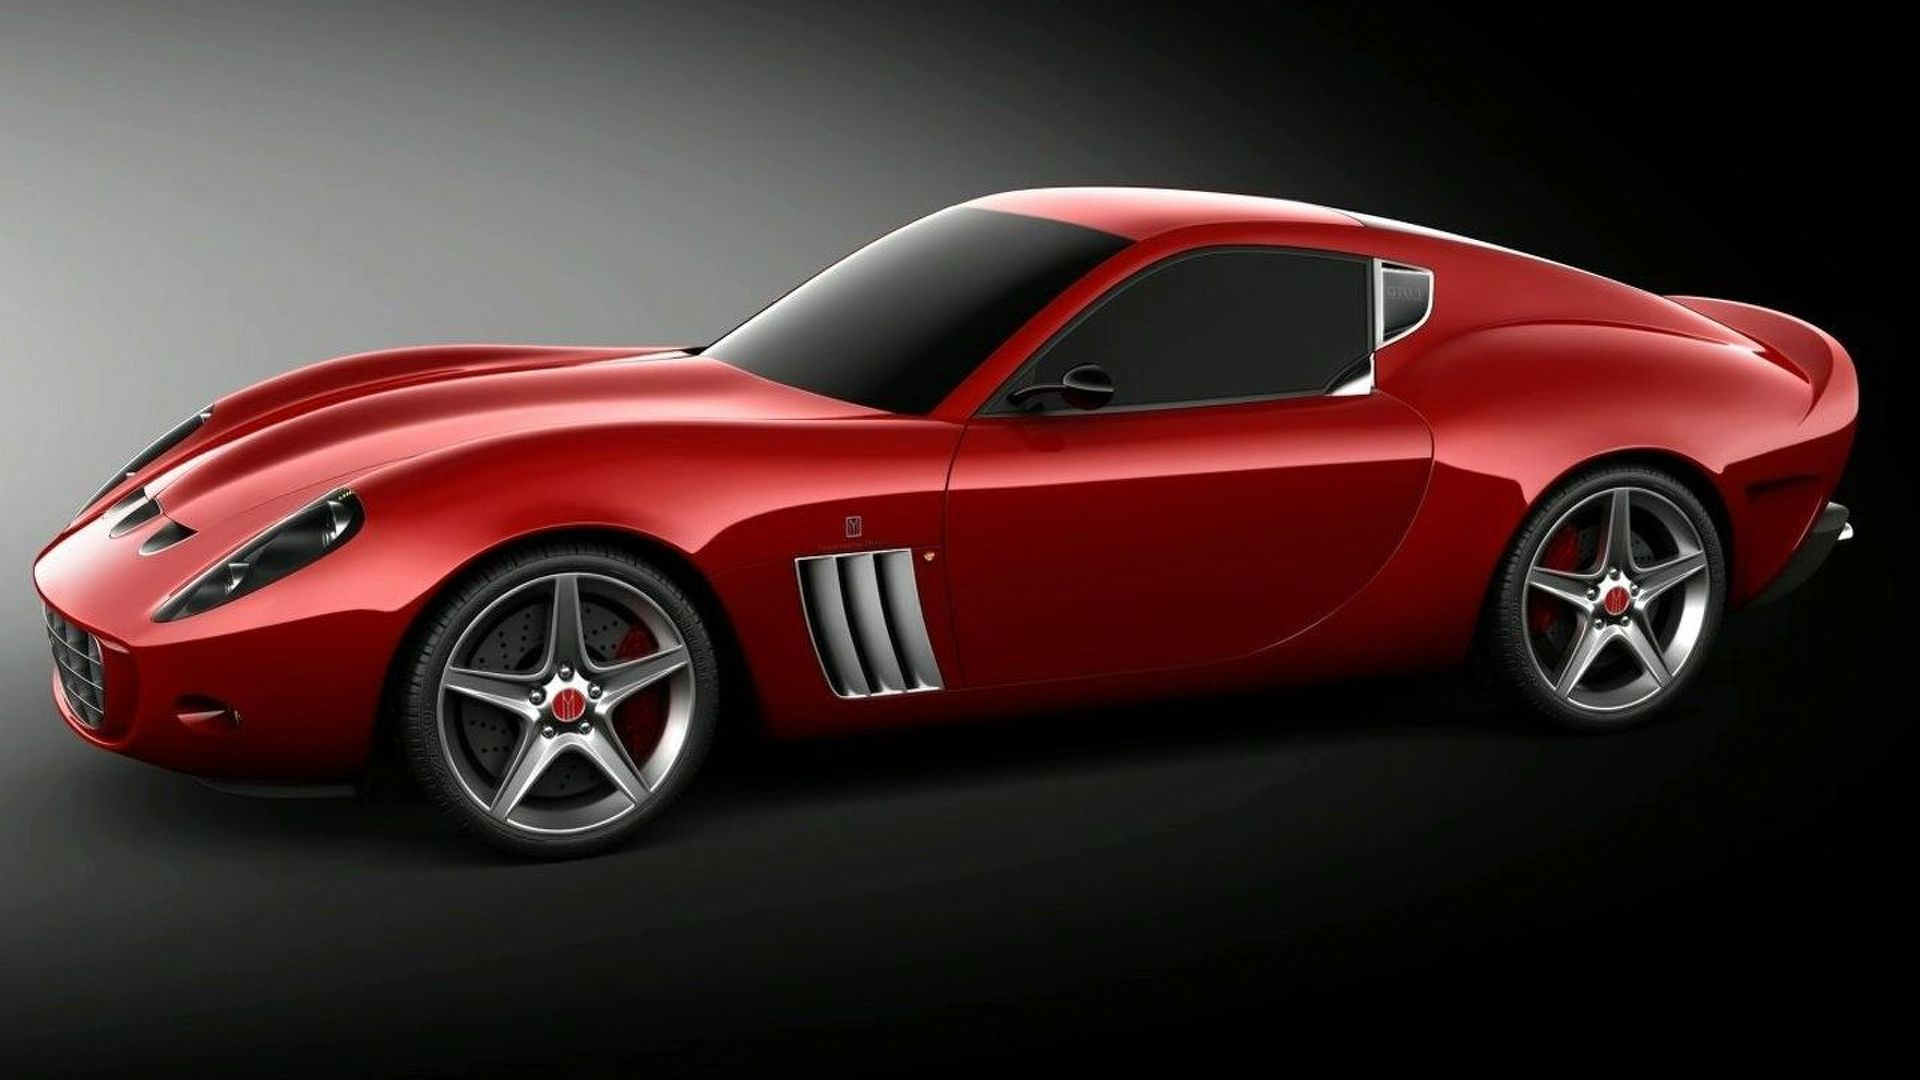 Vandenbrink GTO Revealed - Based on Ferrari 599 GTB Fiorano platform